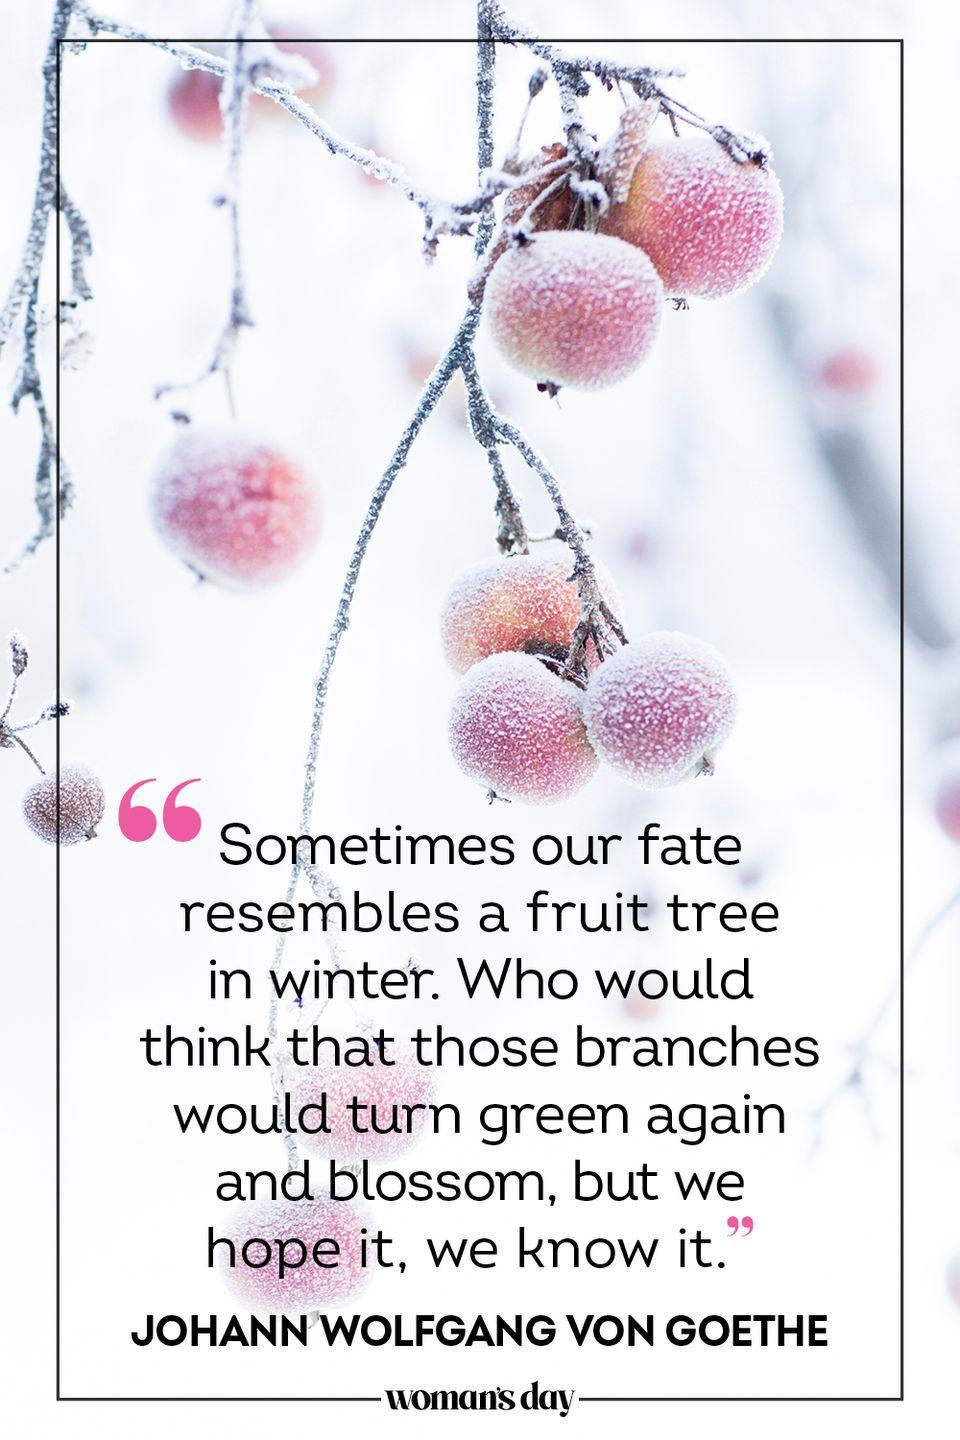 "<p>""Sometimes our fate resembles a fruit <a href=""https://quotefancy.com/quote/839496/Johann-Wolfgang-von-Goethe-Sometimes-our-fate-resembles-a-fruit-tree-in-winter-Who-would"" rel=""nofollow noopener"" target=""_blank"" data-ylk=""slk:tree in winter"" class=""link rapid-noclick-resp"">tree in winter</a>. Who would think that those branches would turn green again and blossom, but we hope it, we know it."" — Johann Wolfgang von Goethe</p>"